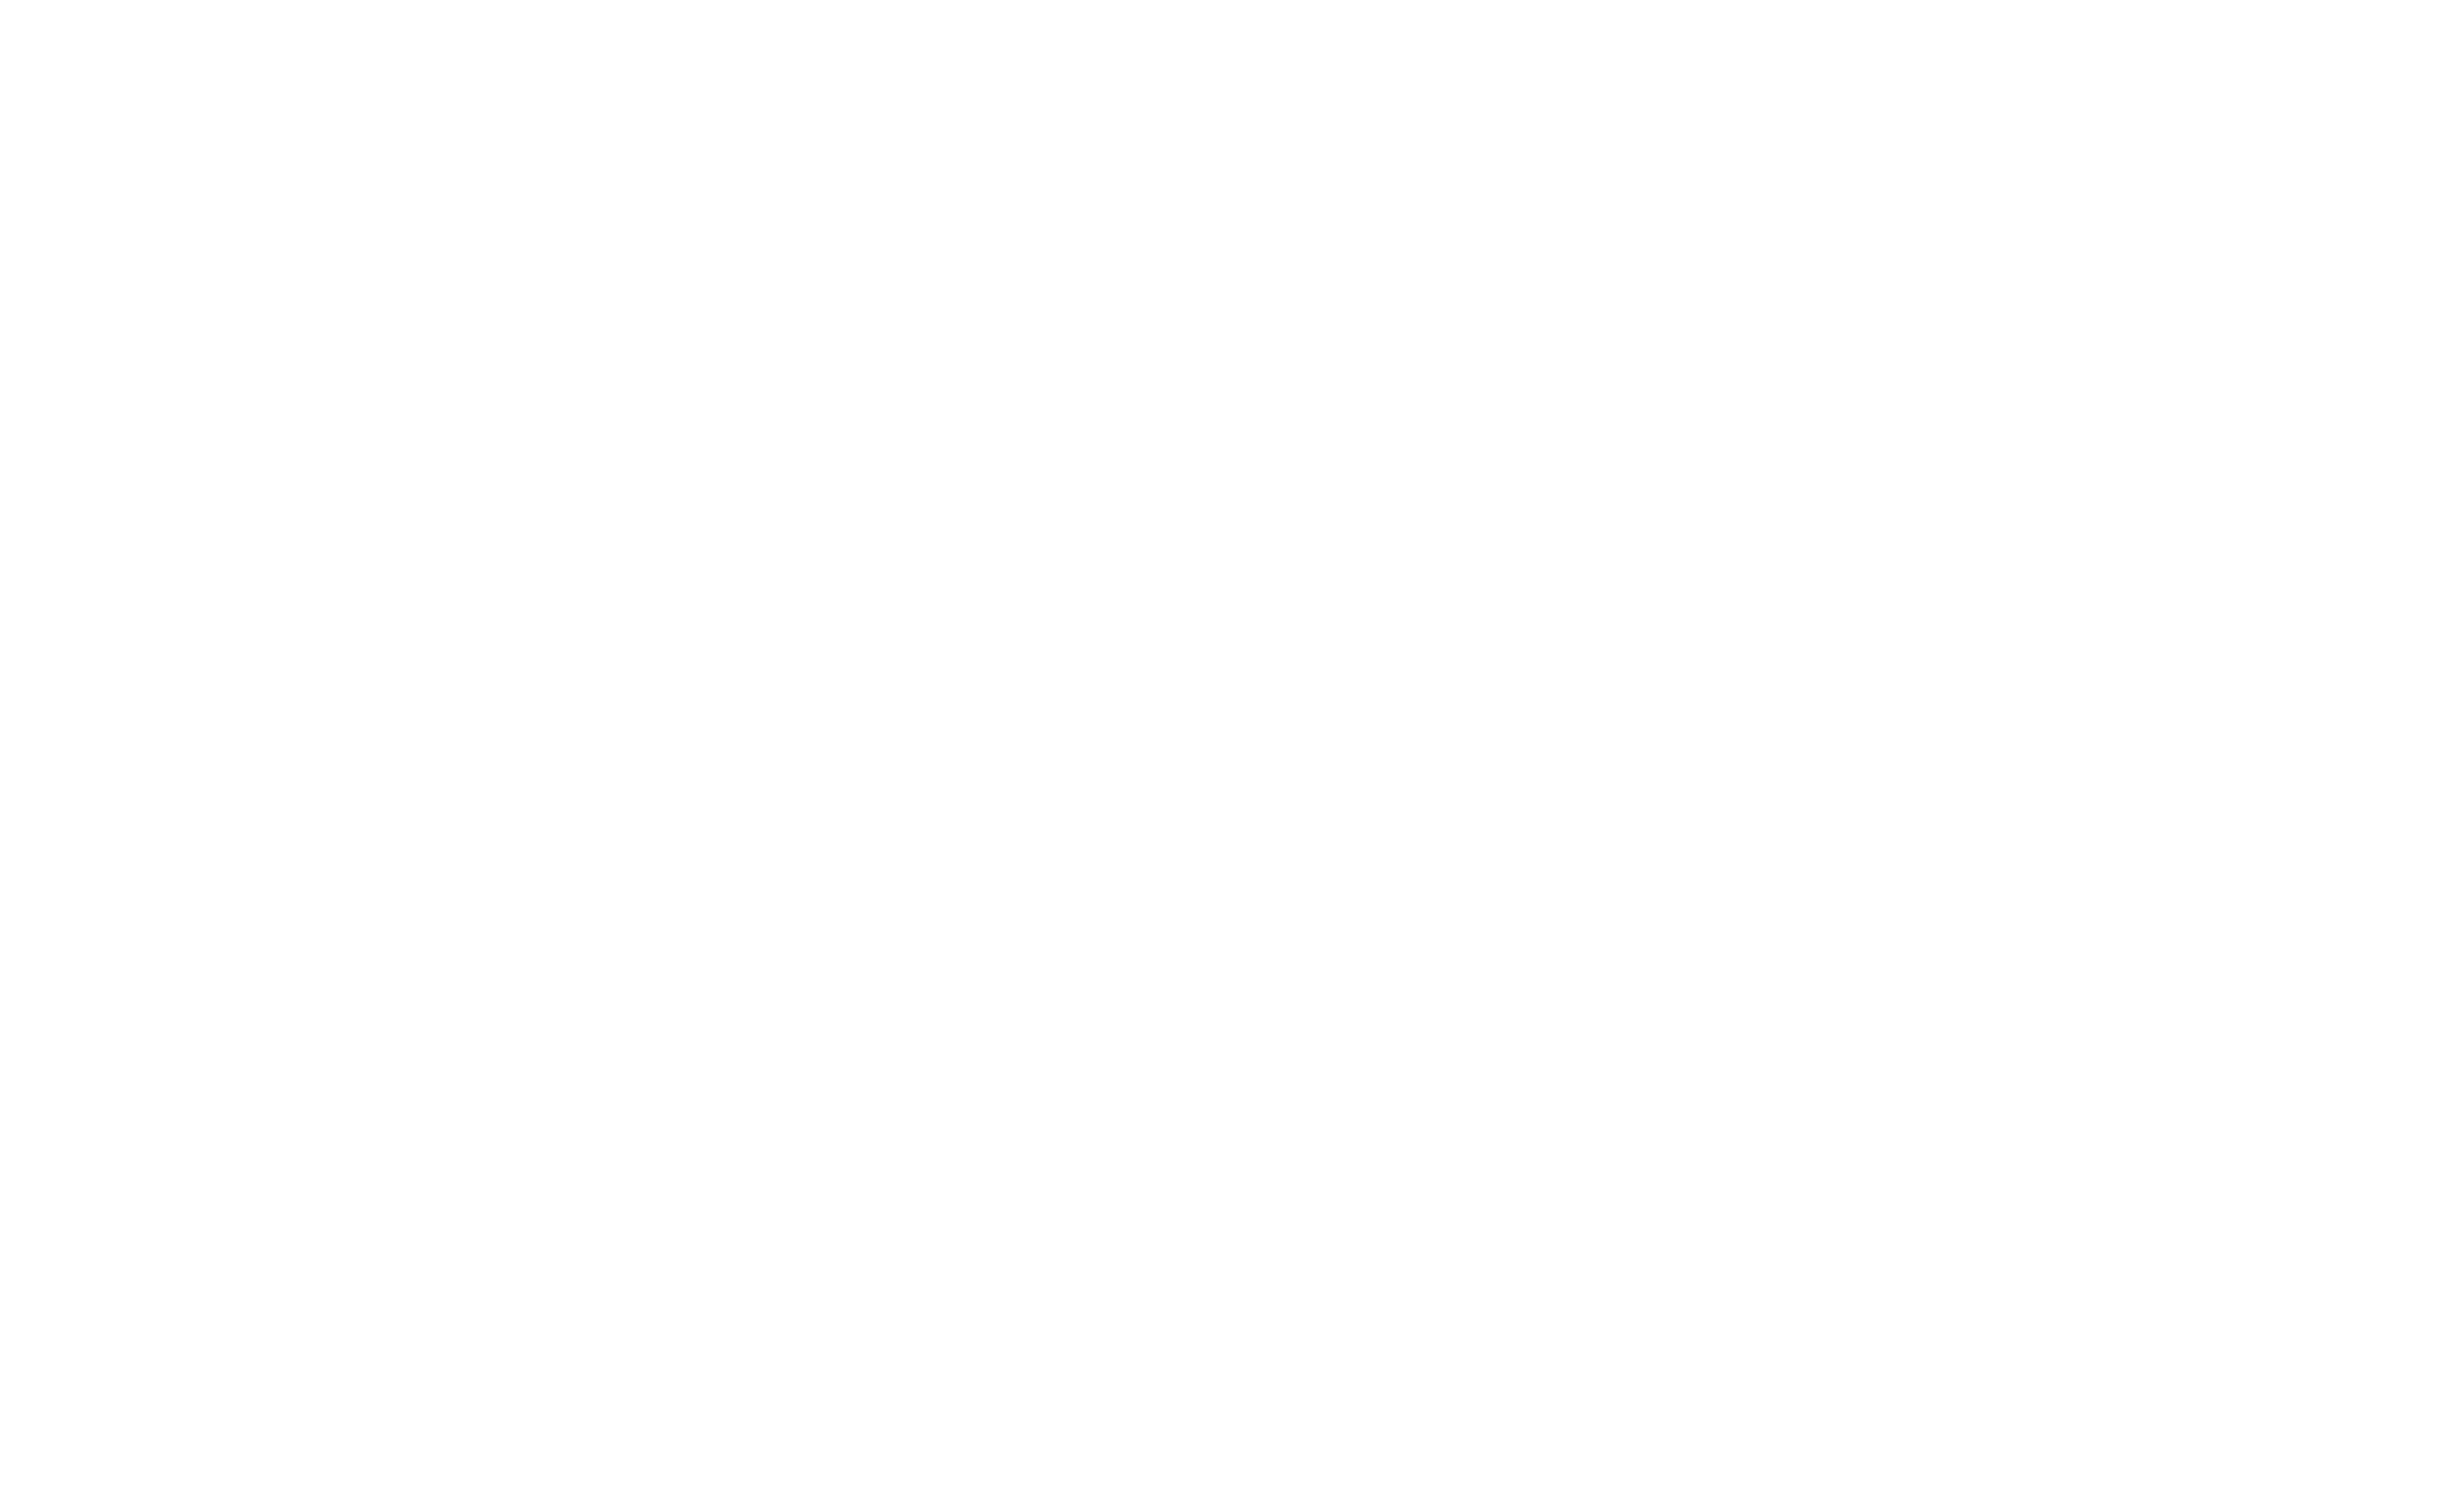 Herdwick Cottages Logo